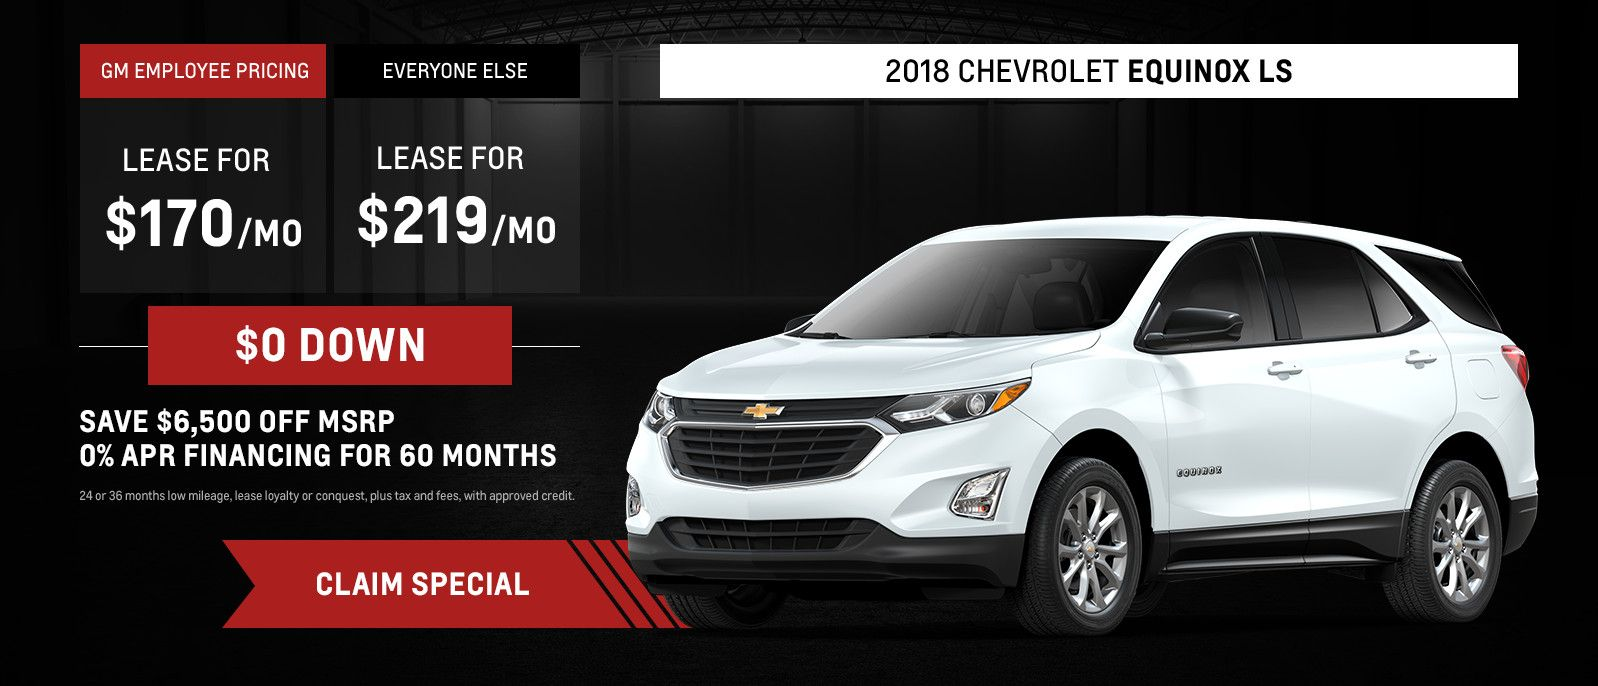 0 Down Lease Deals 2017 Lamoureph Blog Lease Deals Chevrolet Equinox Chevrolet